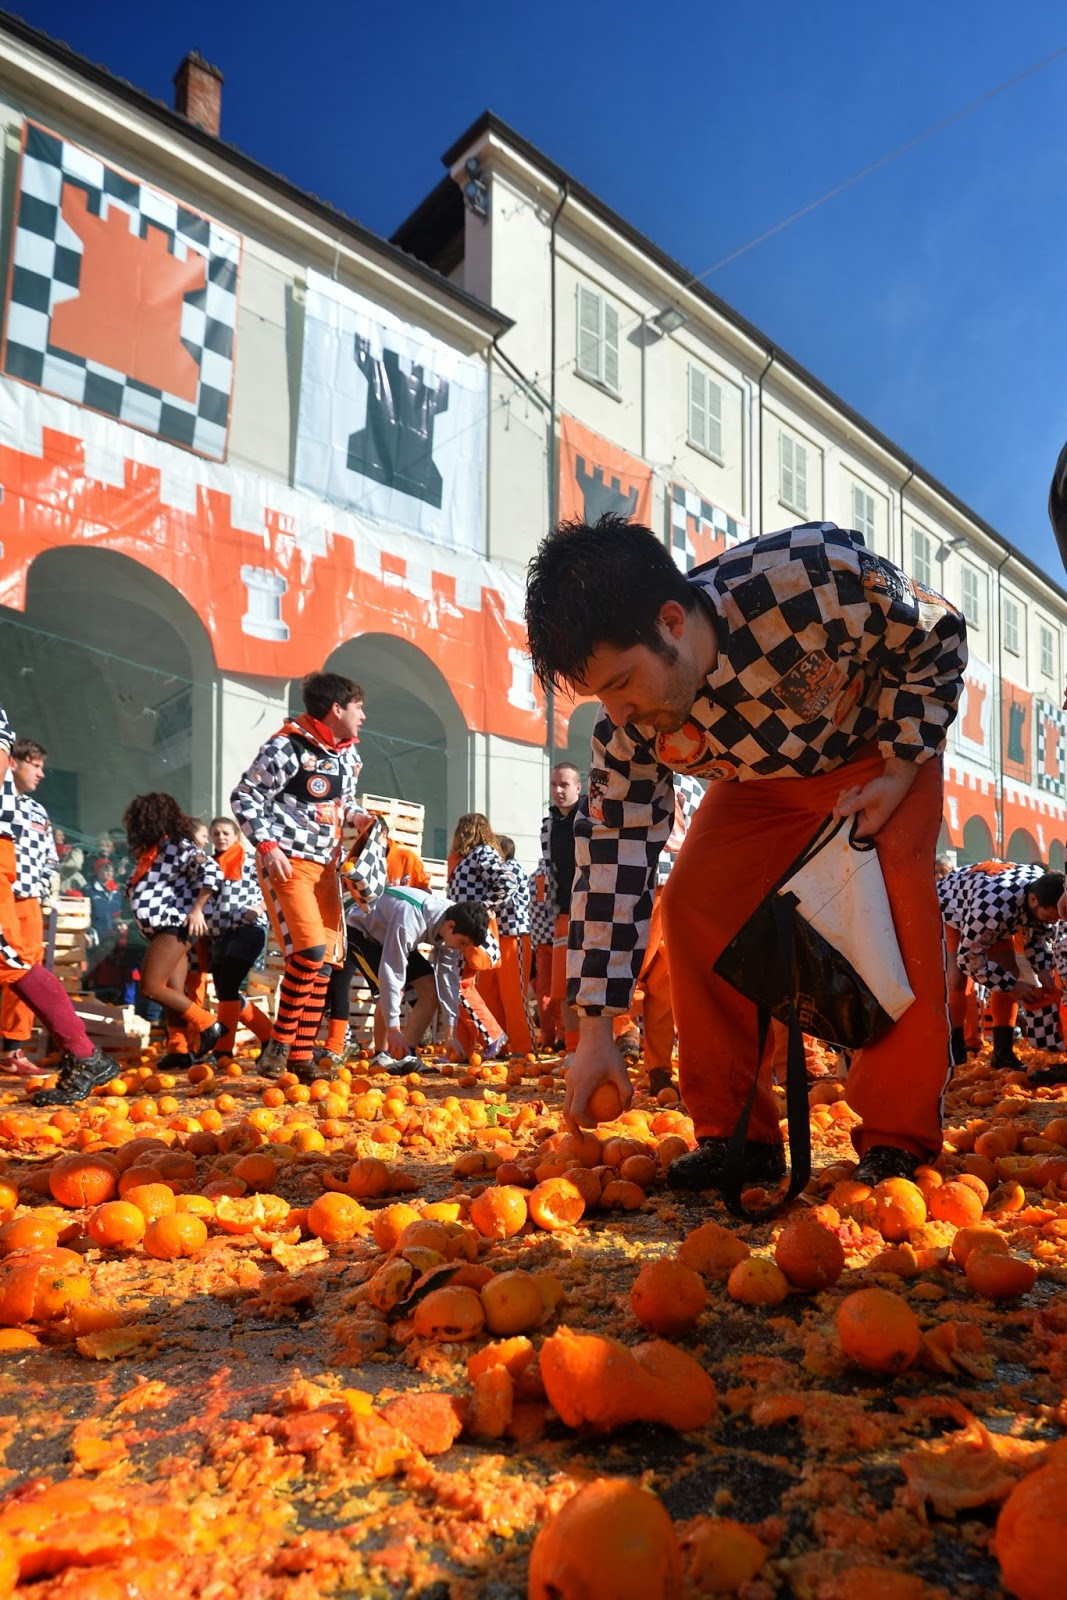 Carnival, Entertainment, Festival, Food, Food fight, Fruits, Italy, Ivrea, News, Offbeat, Oranges, Tradition,